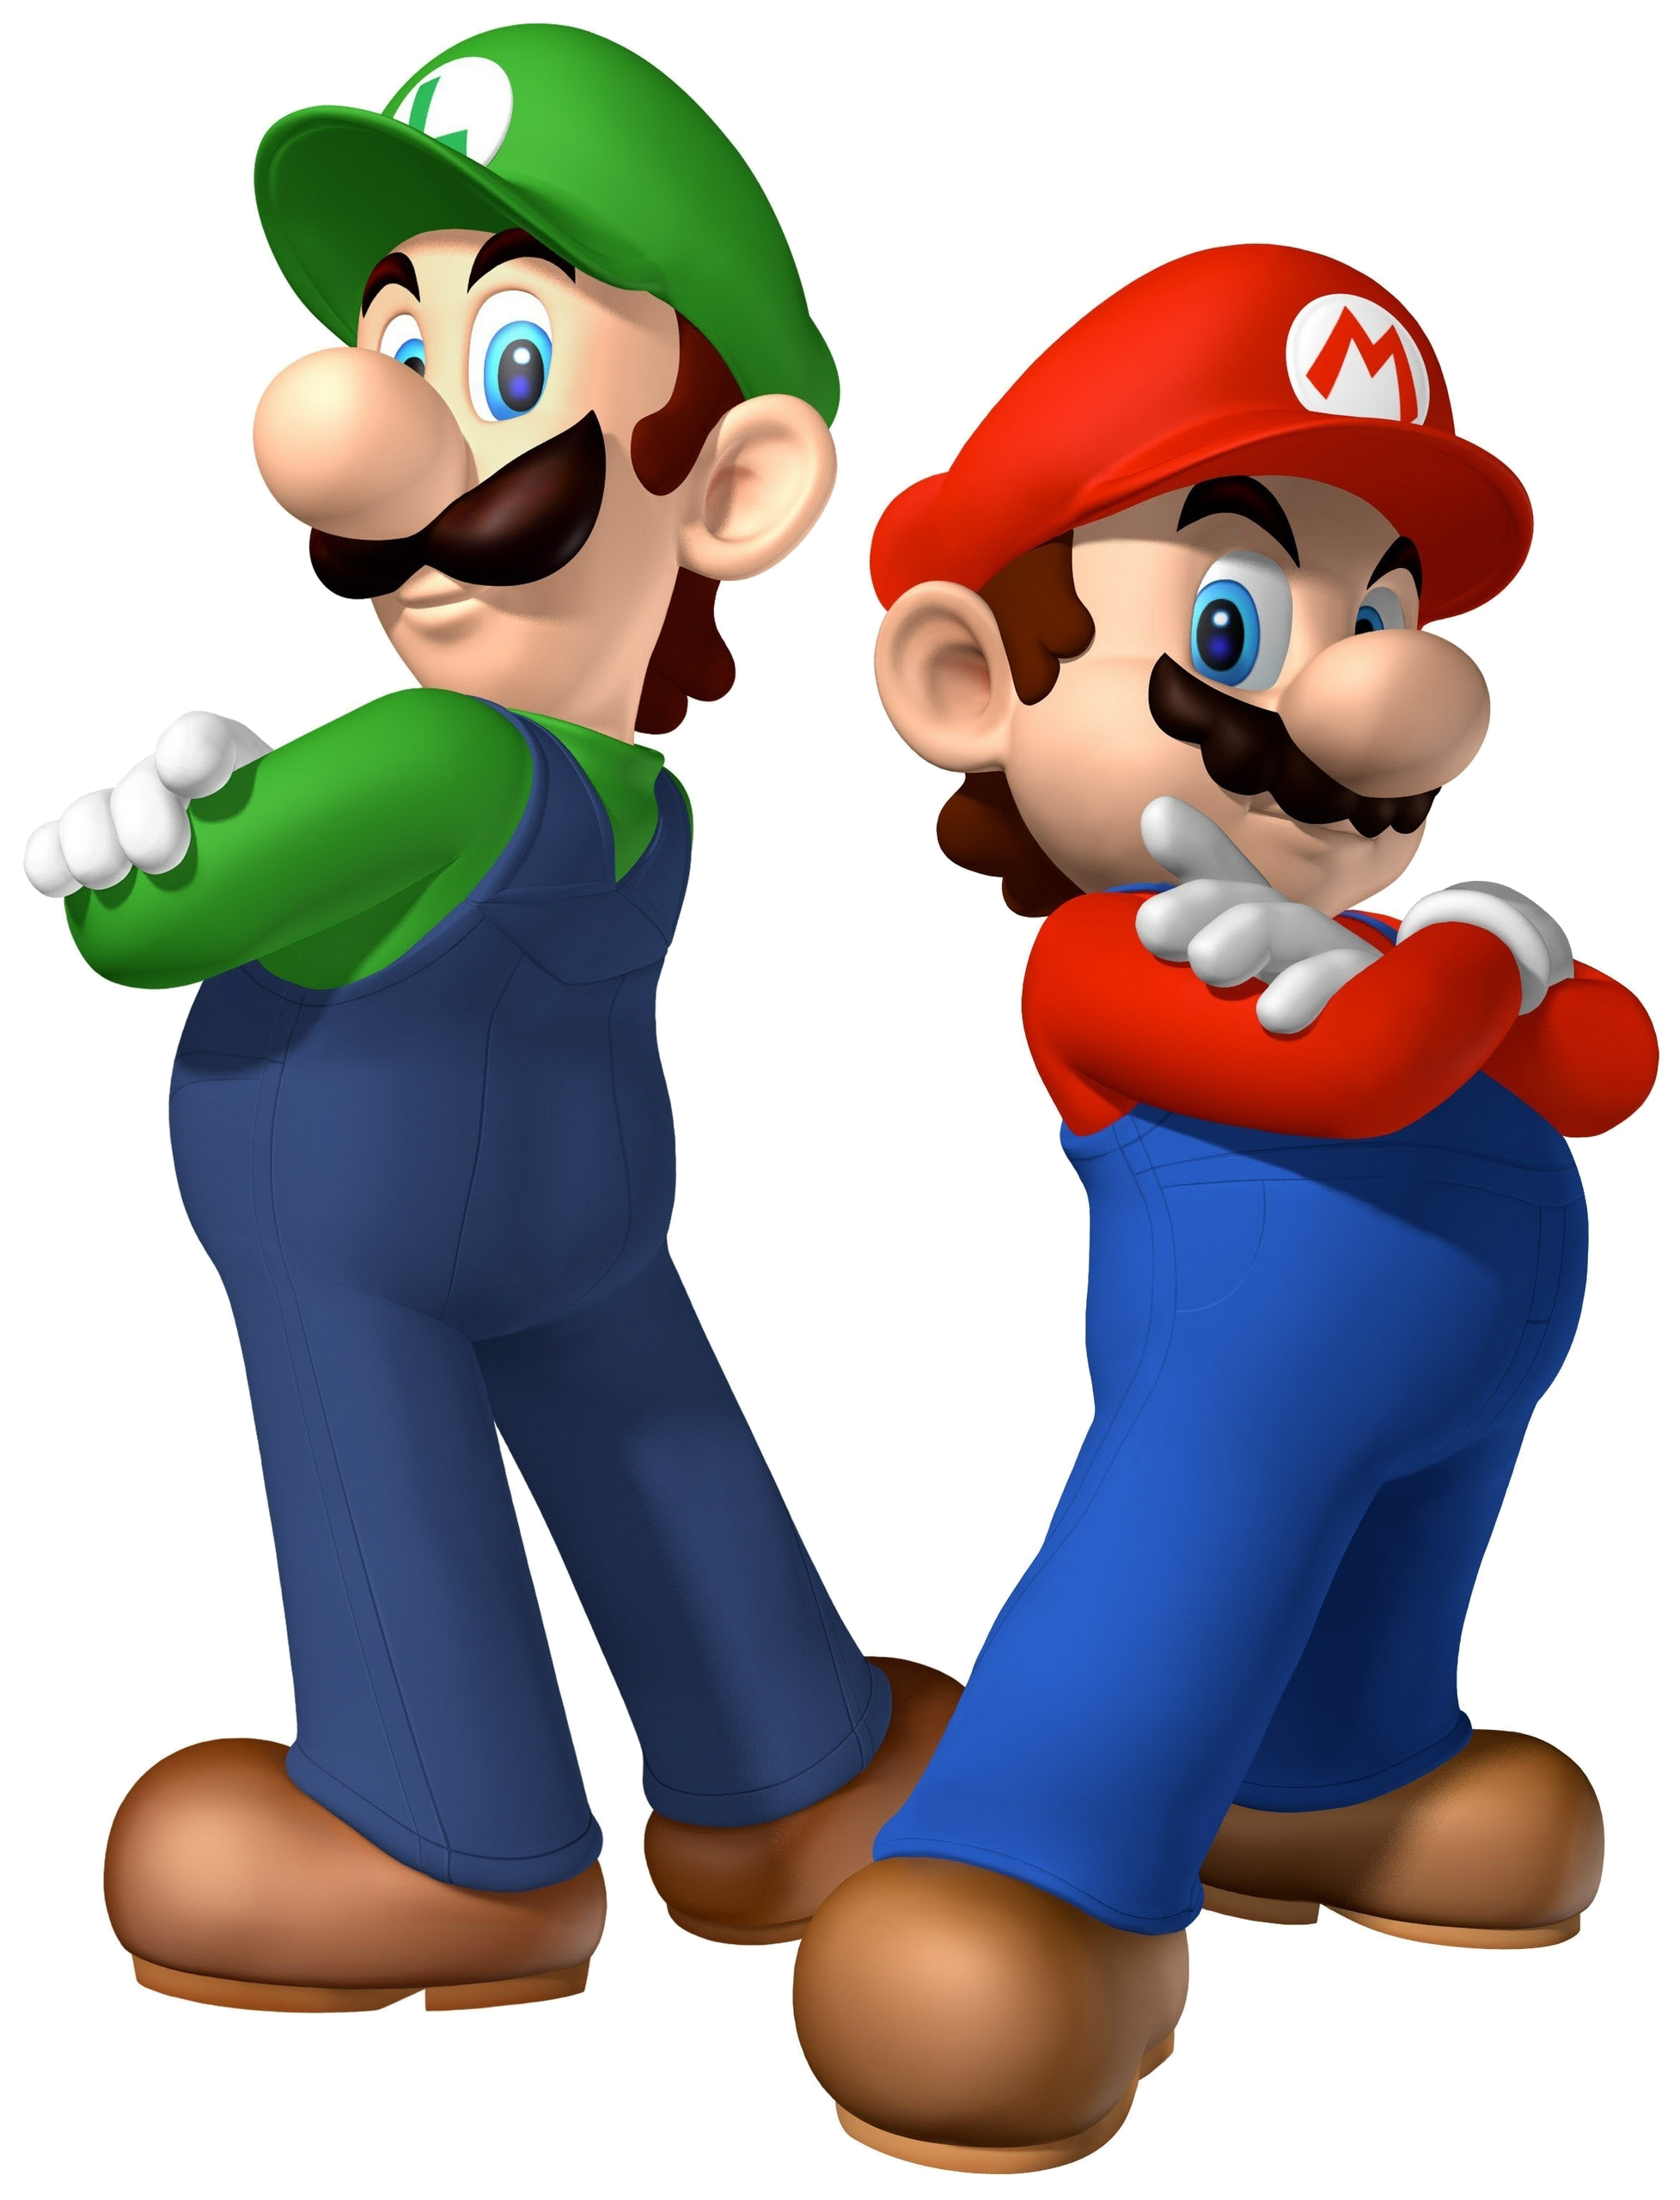 mario png index content uploads #11671